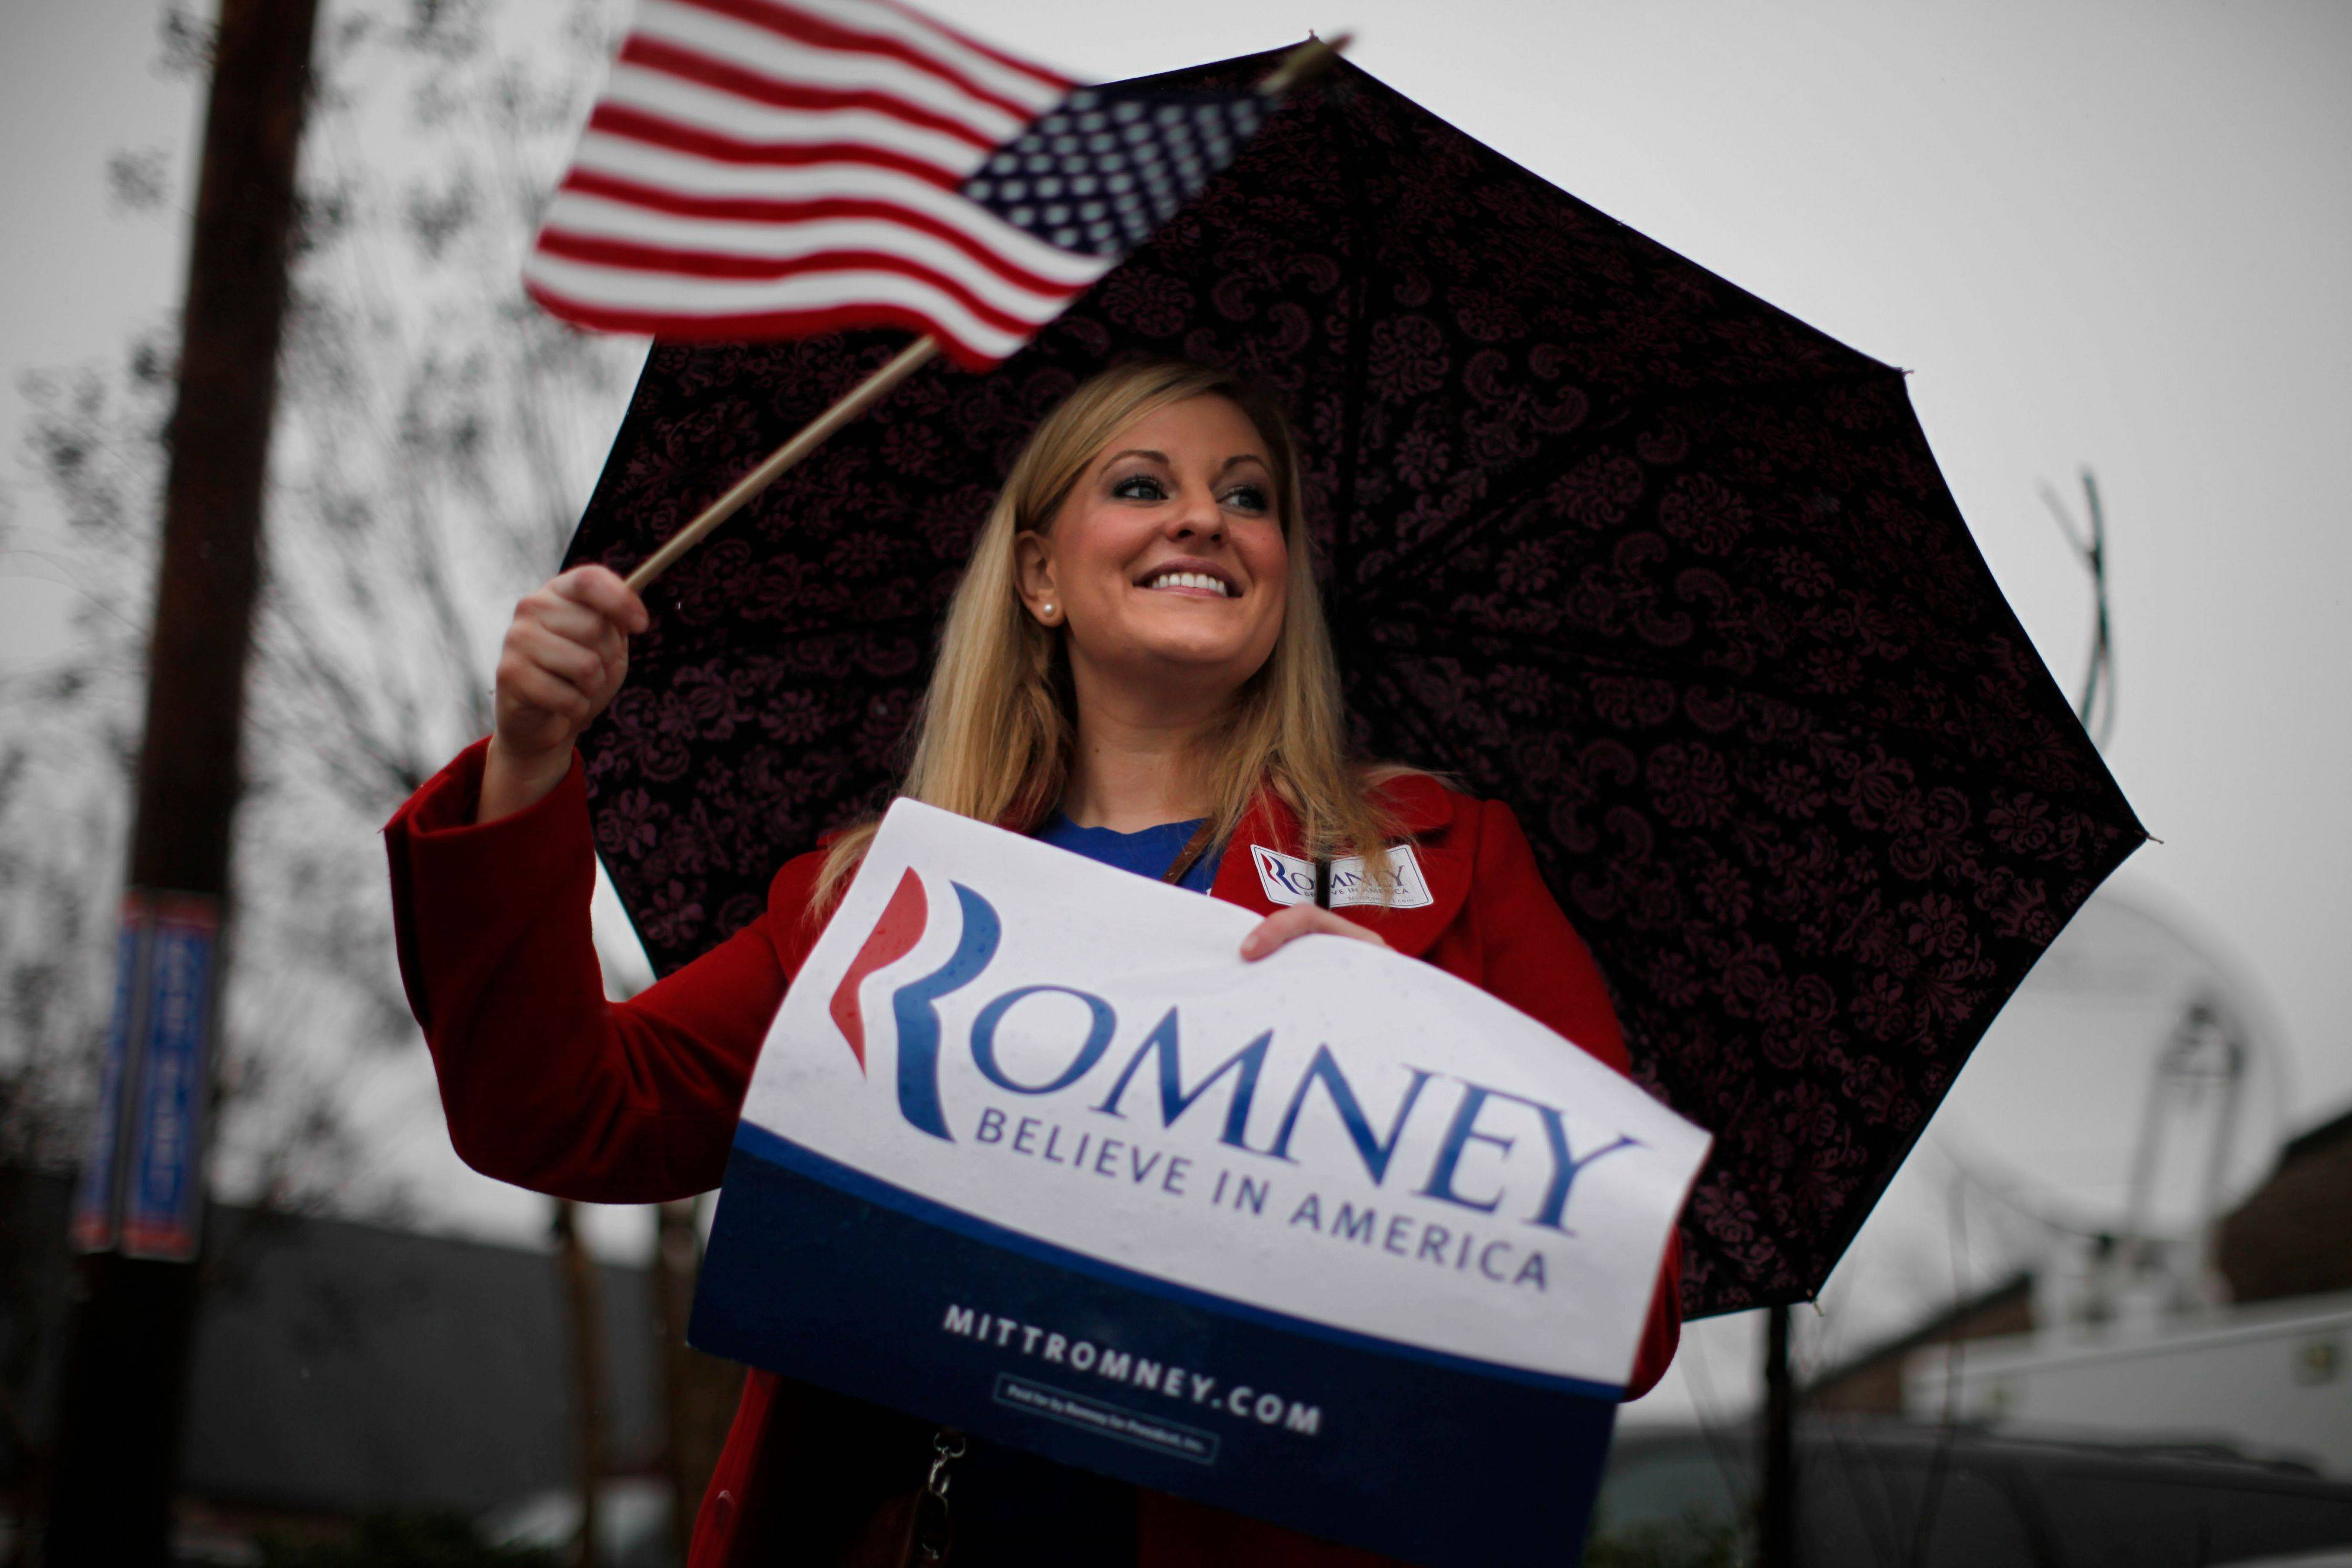 A supporter of Republican presidential candidate former Massachusetts Gov. Mitt Romney displays a sign Saturday during a rainstorm before campaign stops by two Republican presidential candidates, Romney and former House Speaker Newt Gingrich, at Tommy�s Country Ham House in Greenville, S.C.